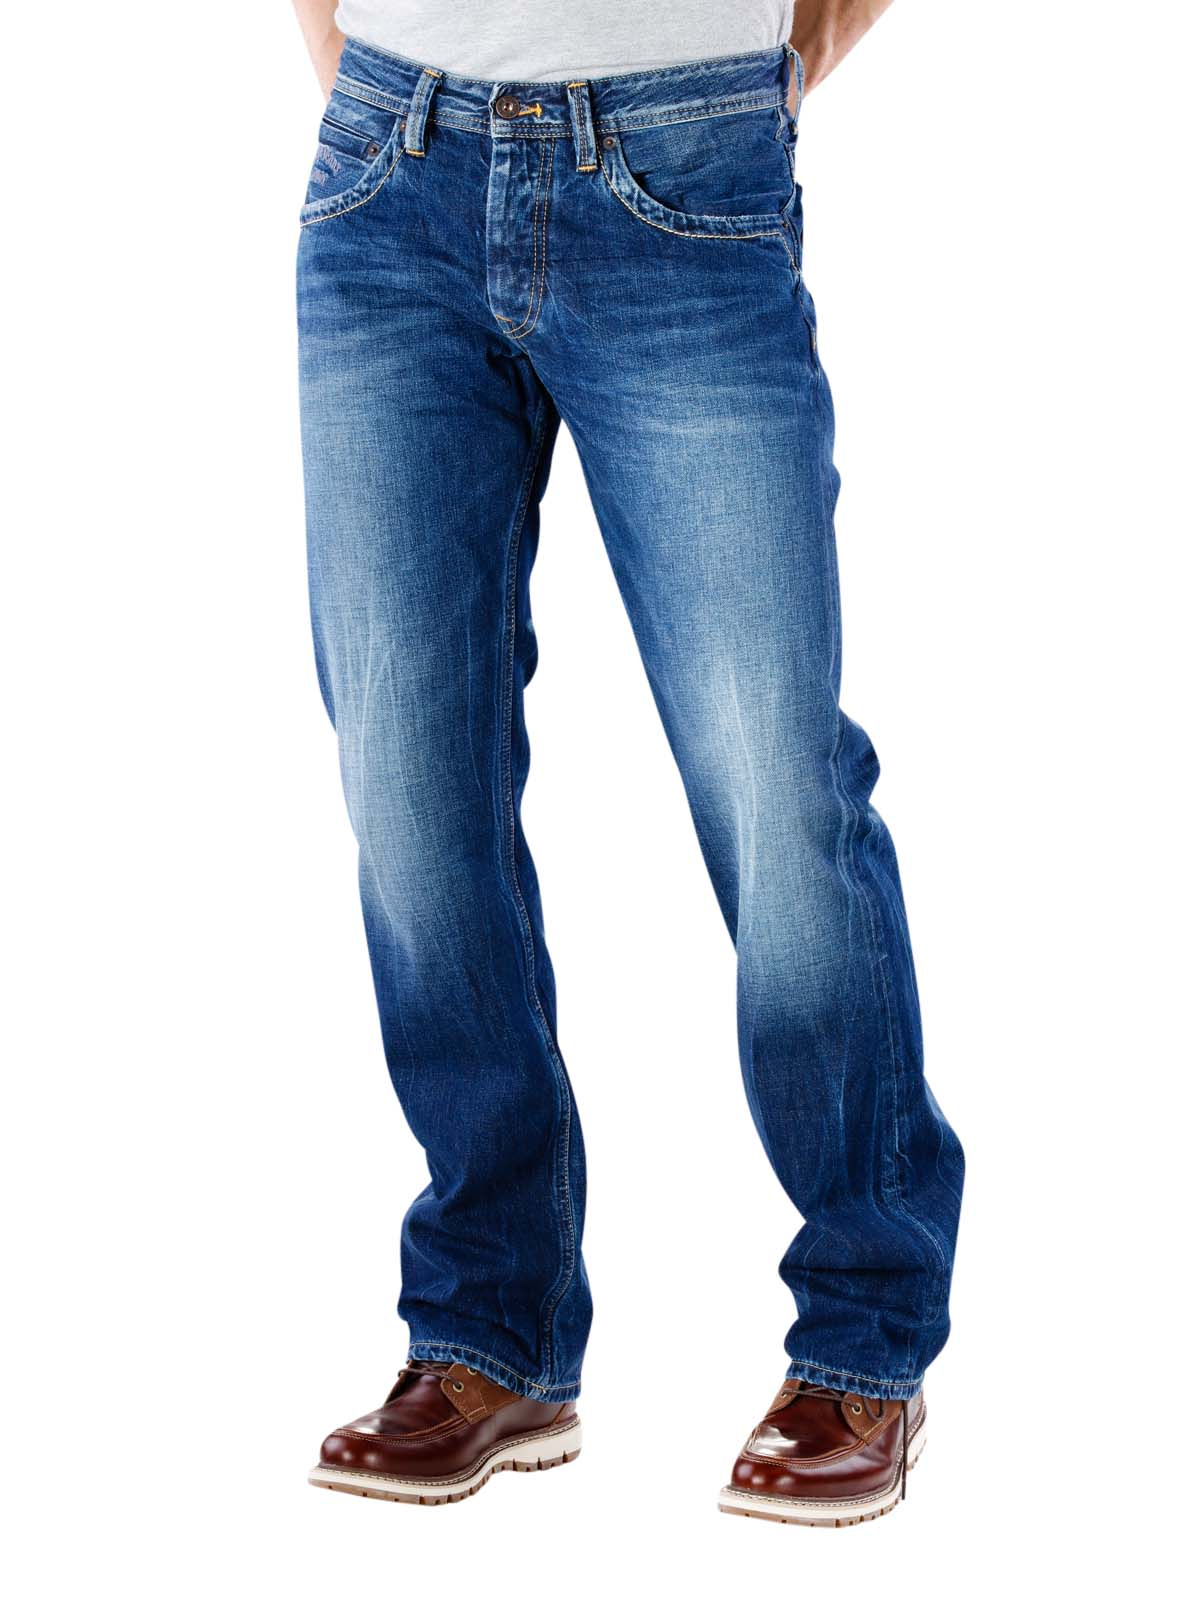 c3bc8b6b8bd McJeans.ch - Fast Delivery | Pepe Jeans Jeanius Relaxed Fit W53 ...